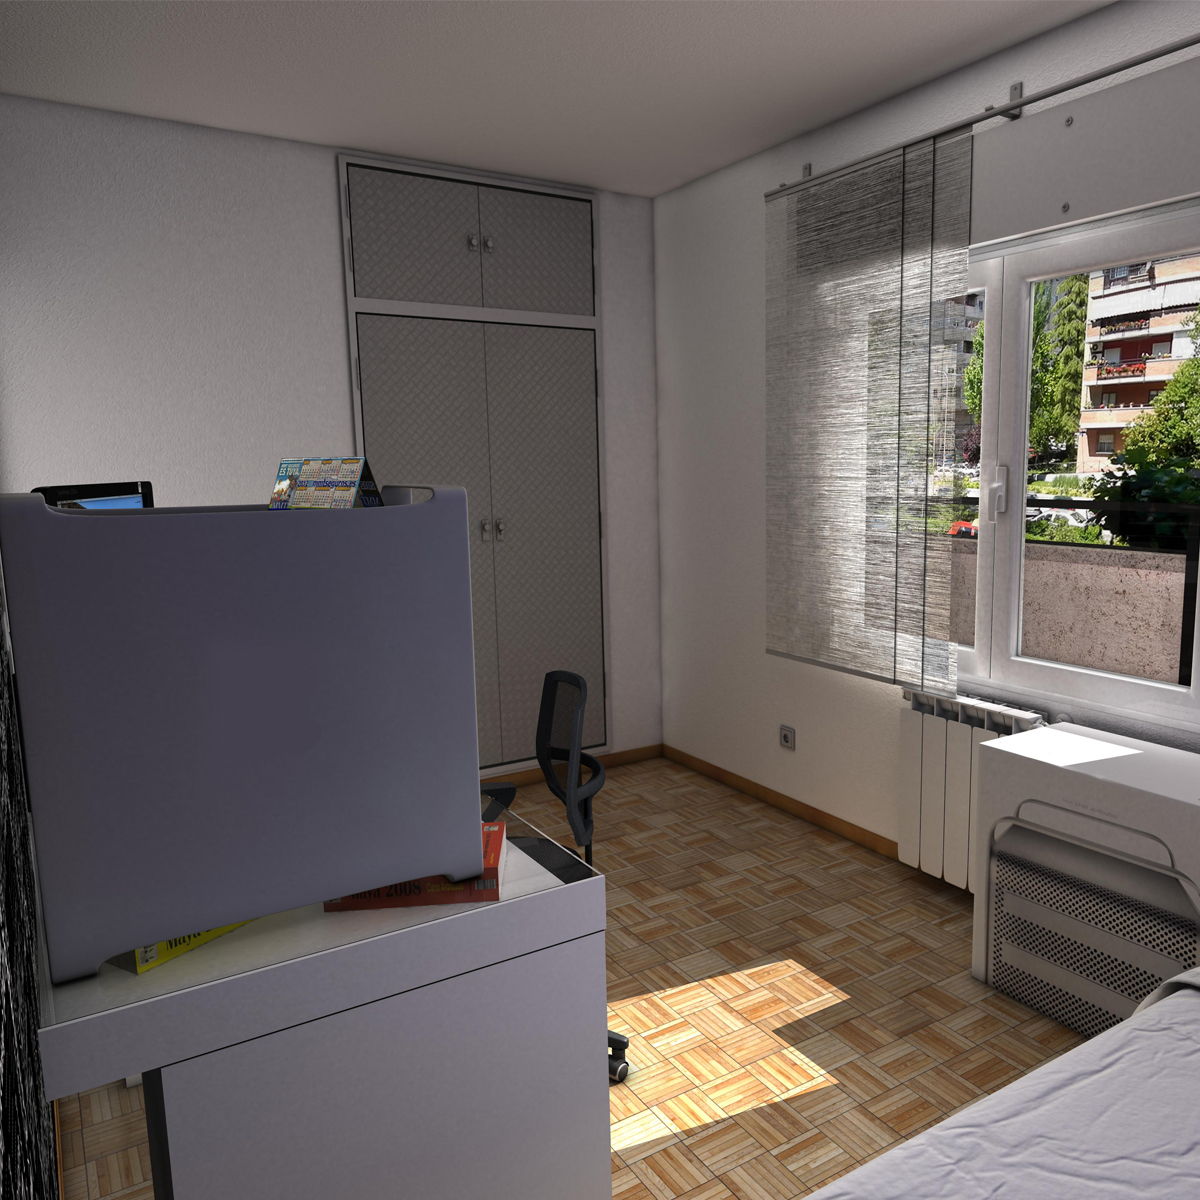 room 3d model 3ds max fbx c4d ma mb obj 159585